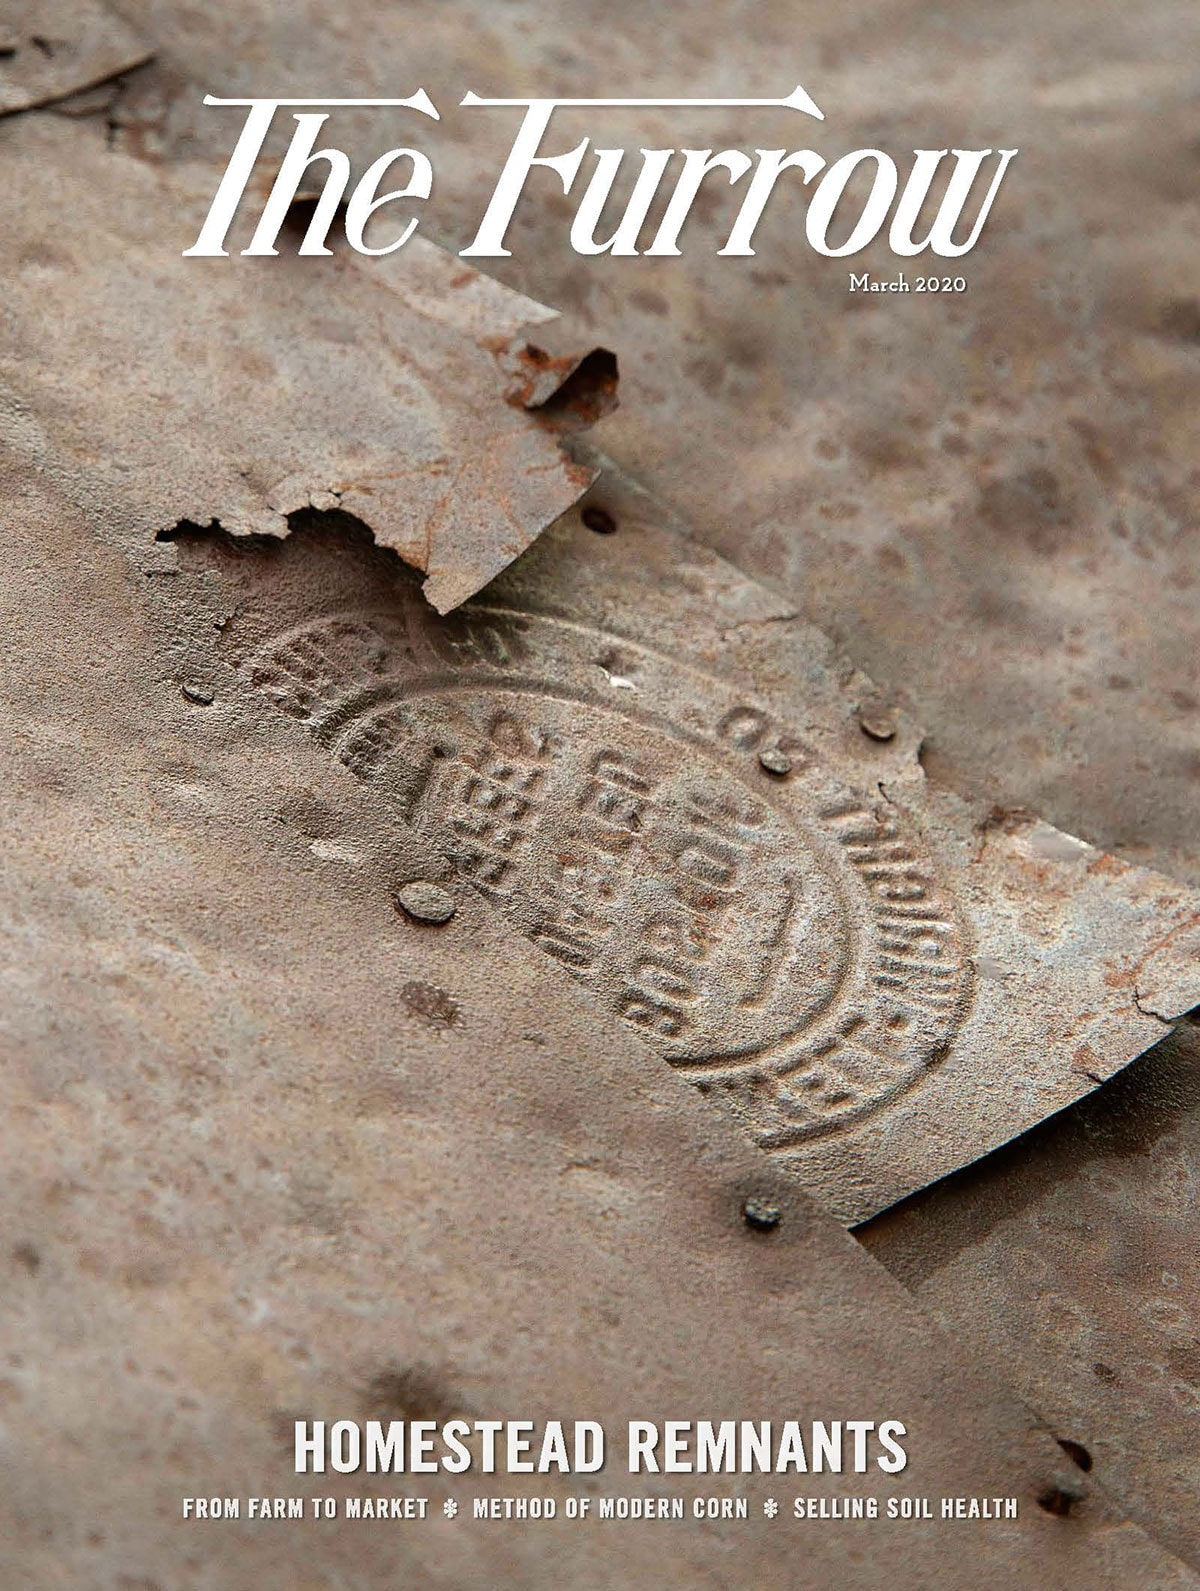 The Furrow - March 2020 Issue